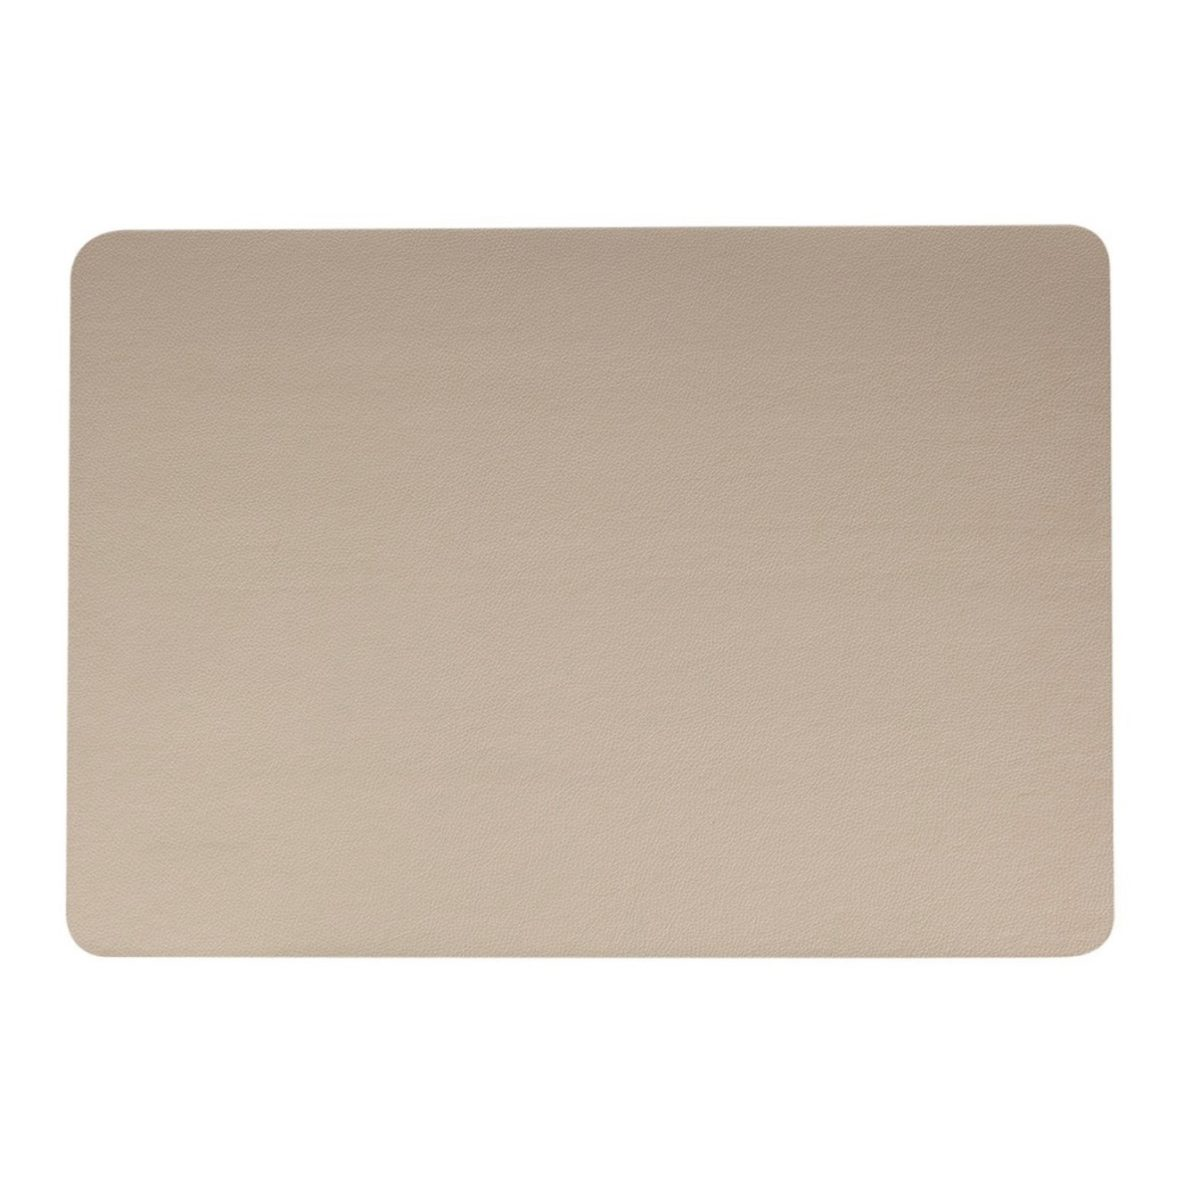 7801420 1200x1204 - Placemat Leather optic fine stone 46*33 cm (7801420)